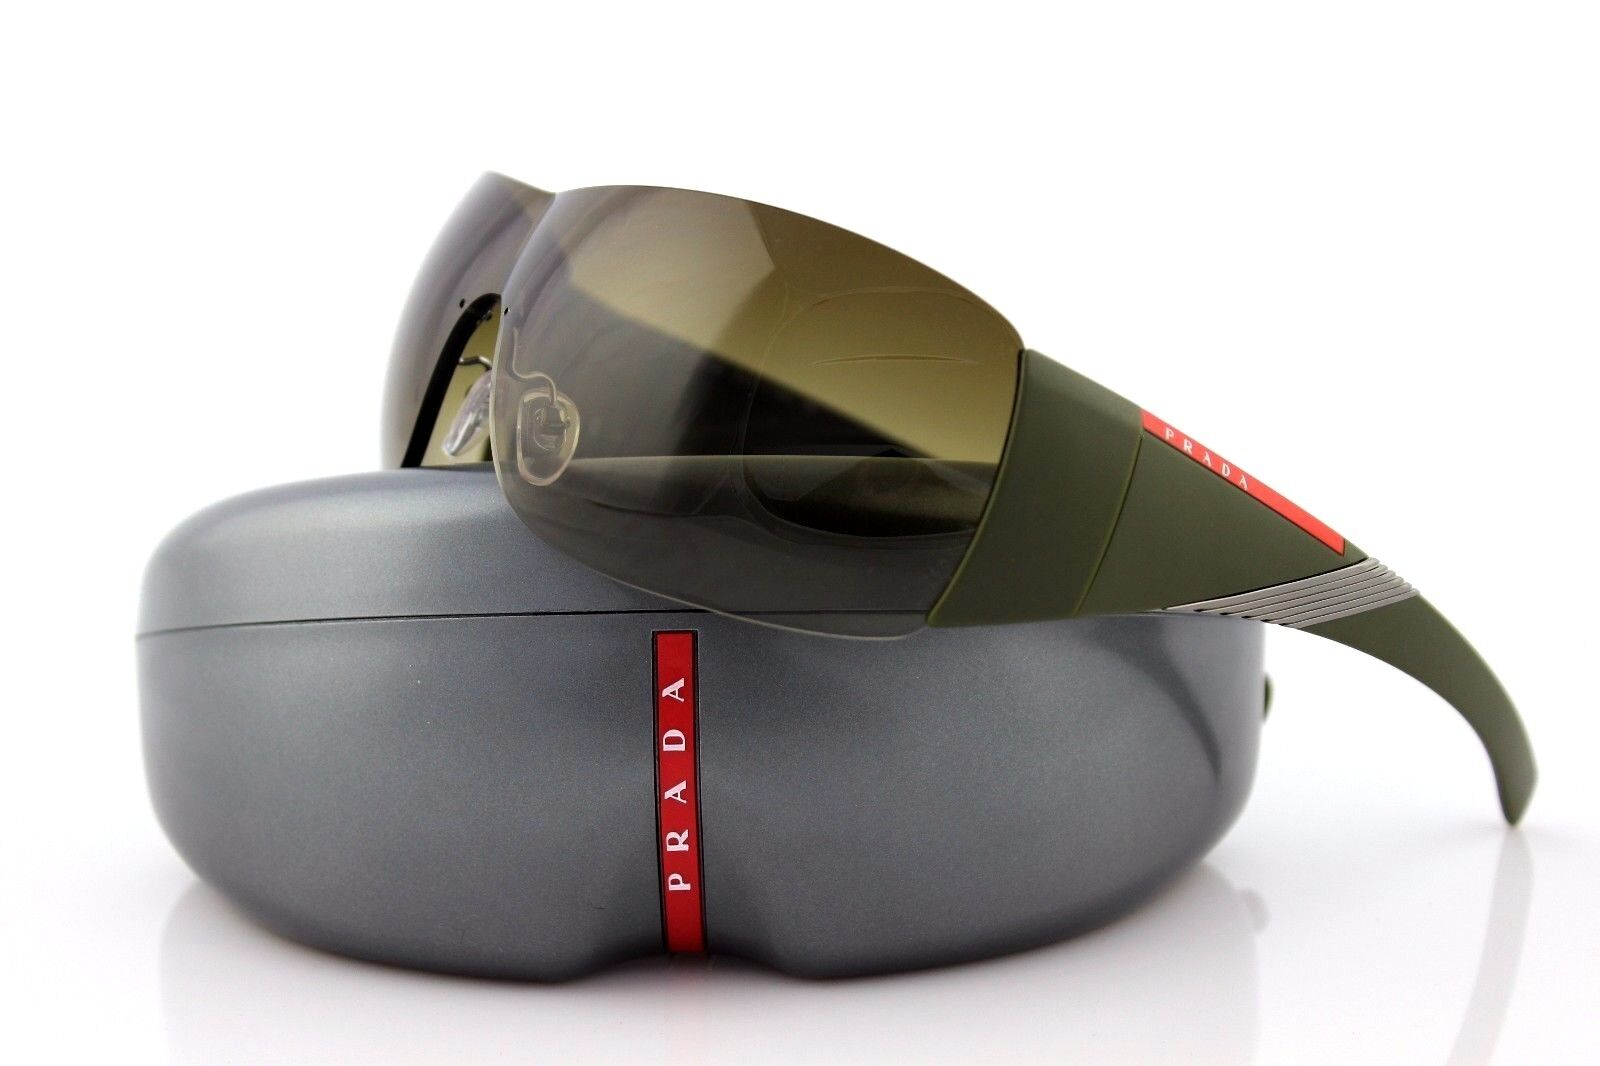 f9c08f1e21 RARE NEW Genuine PRADA Sport Shield Khaki Sunglasses PS 07HS SPS 07H 7Y5  1X1 O7H фото